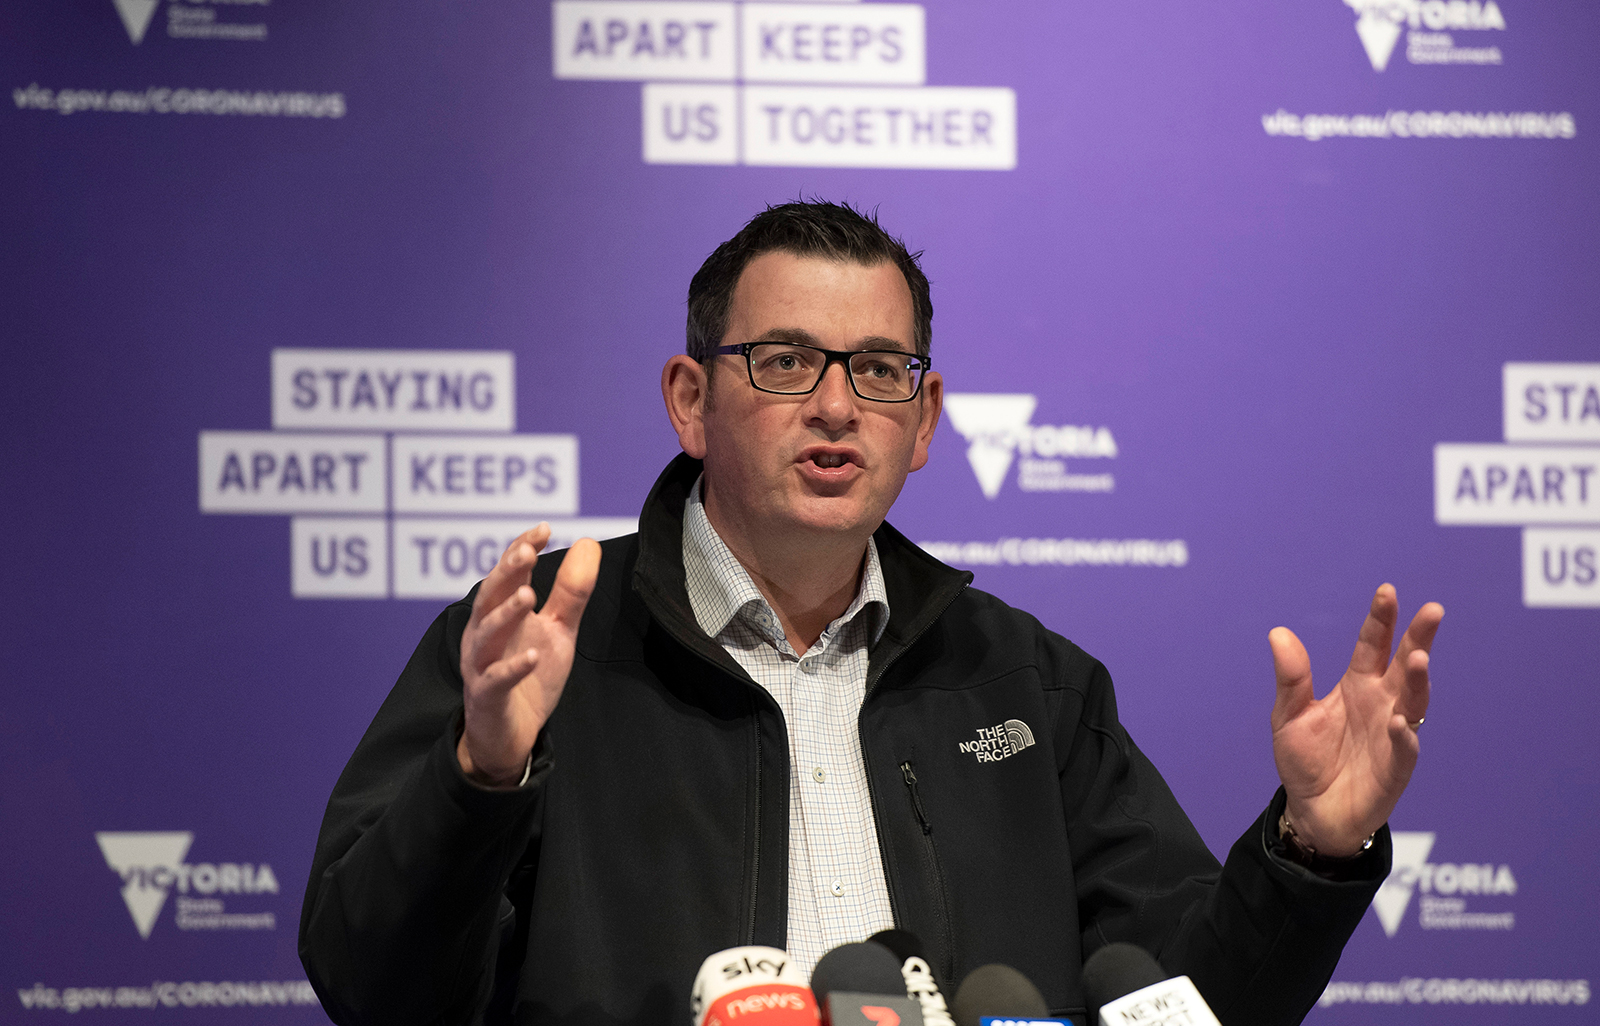 Victorian Premier Daniel Andrews briefs the media on conditions concerning the Covid-19 situation in Melbourne, Australia, on July 6.